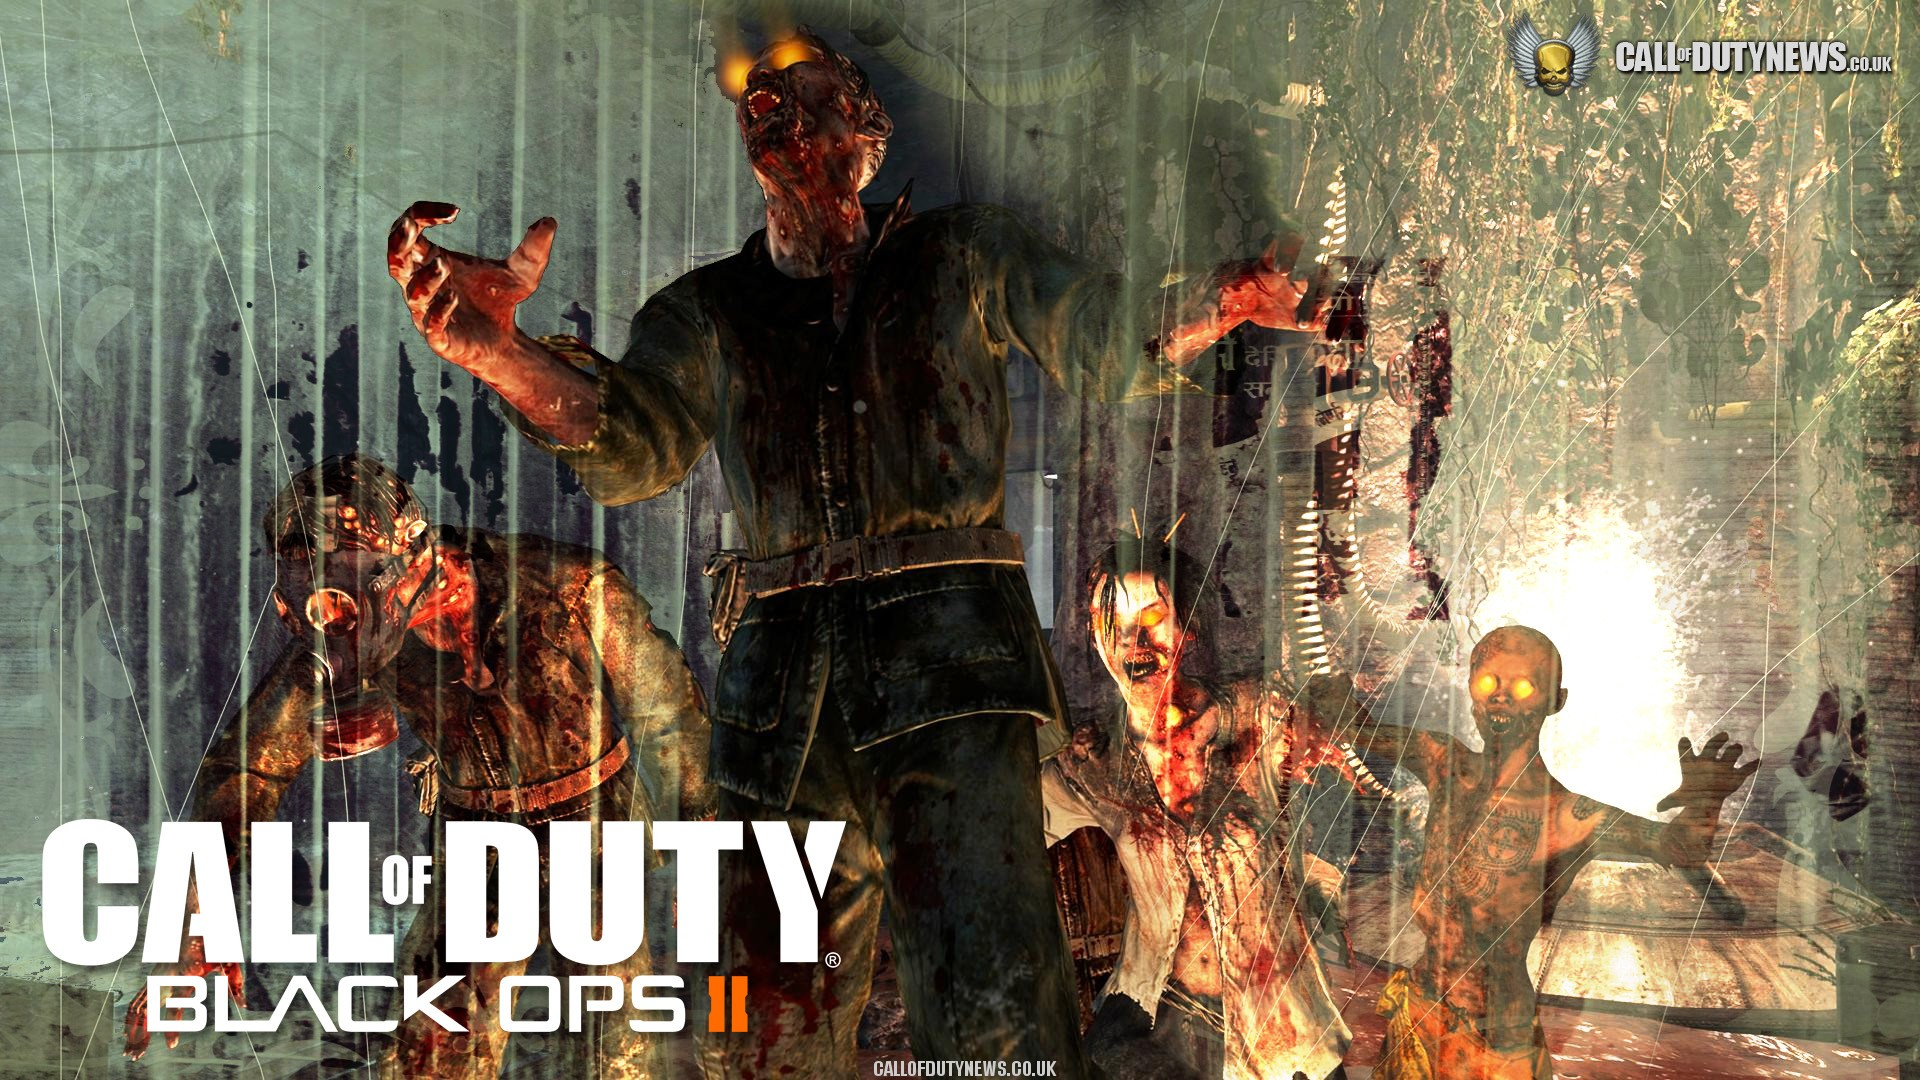 Black ops zombies wallpaper sf wallpaper black ops 2 zombies wallpaper wallpapersafari voltagebd Image collections